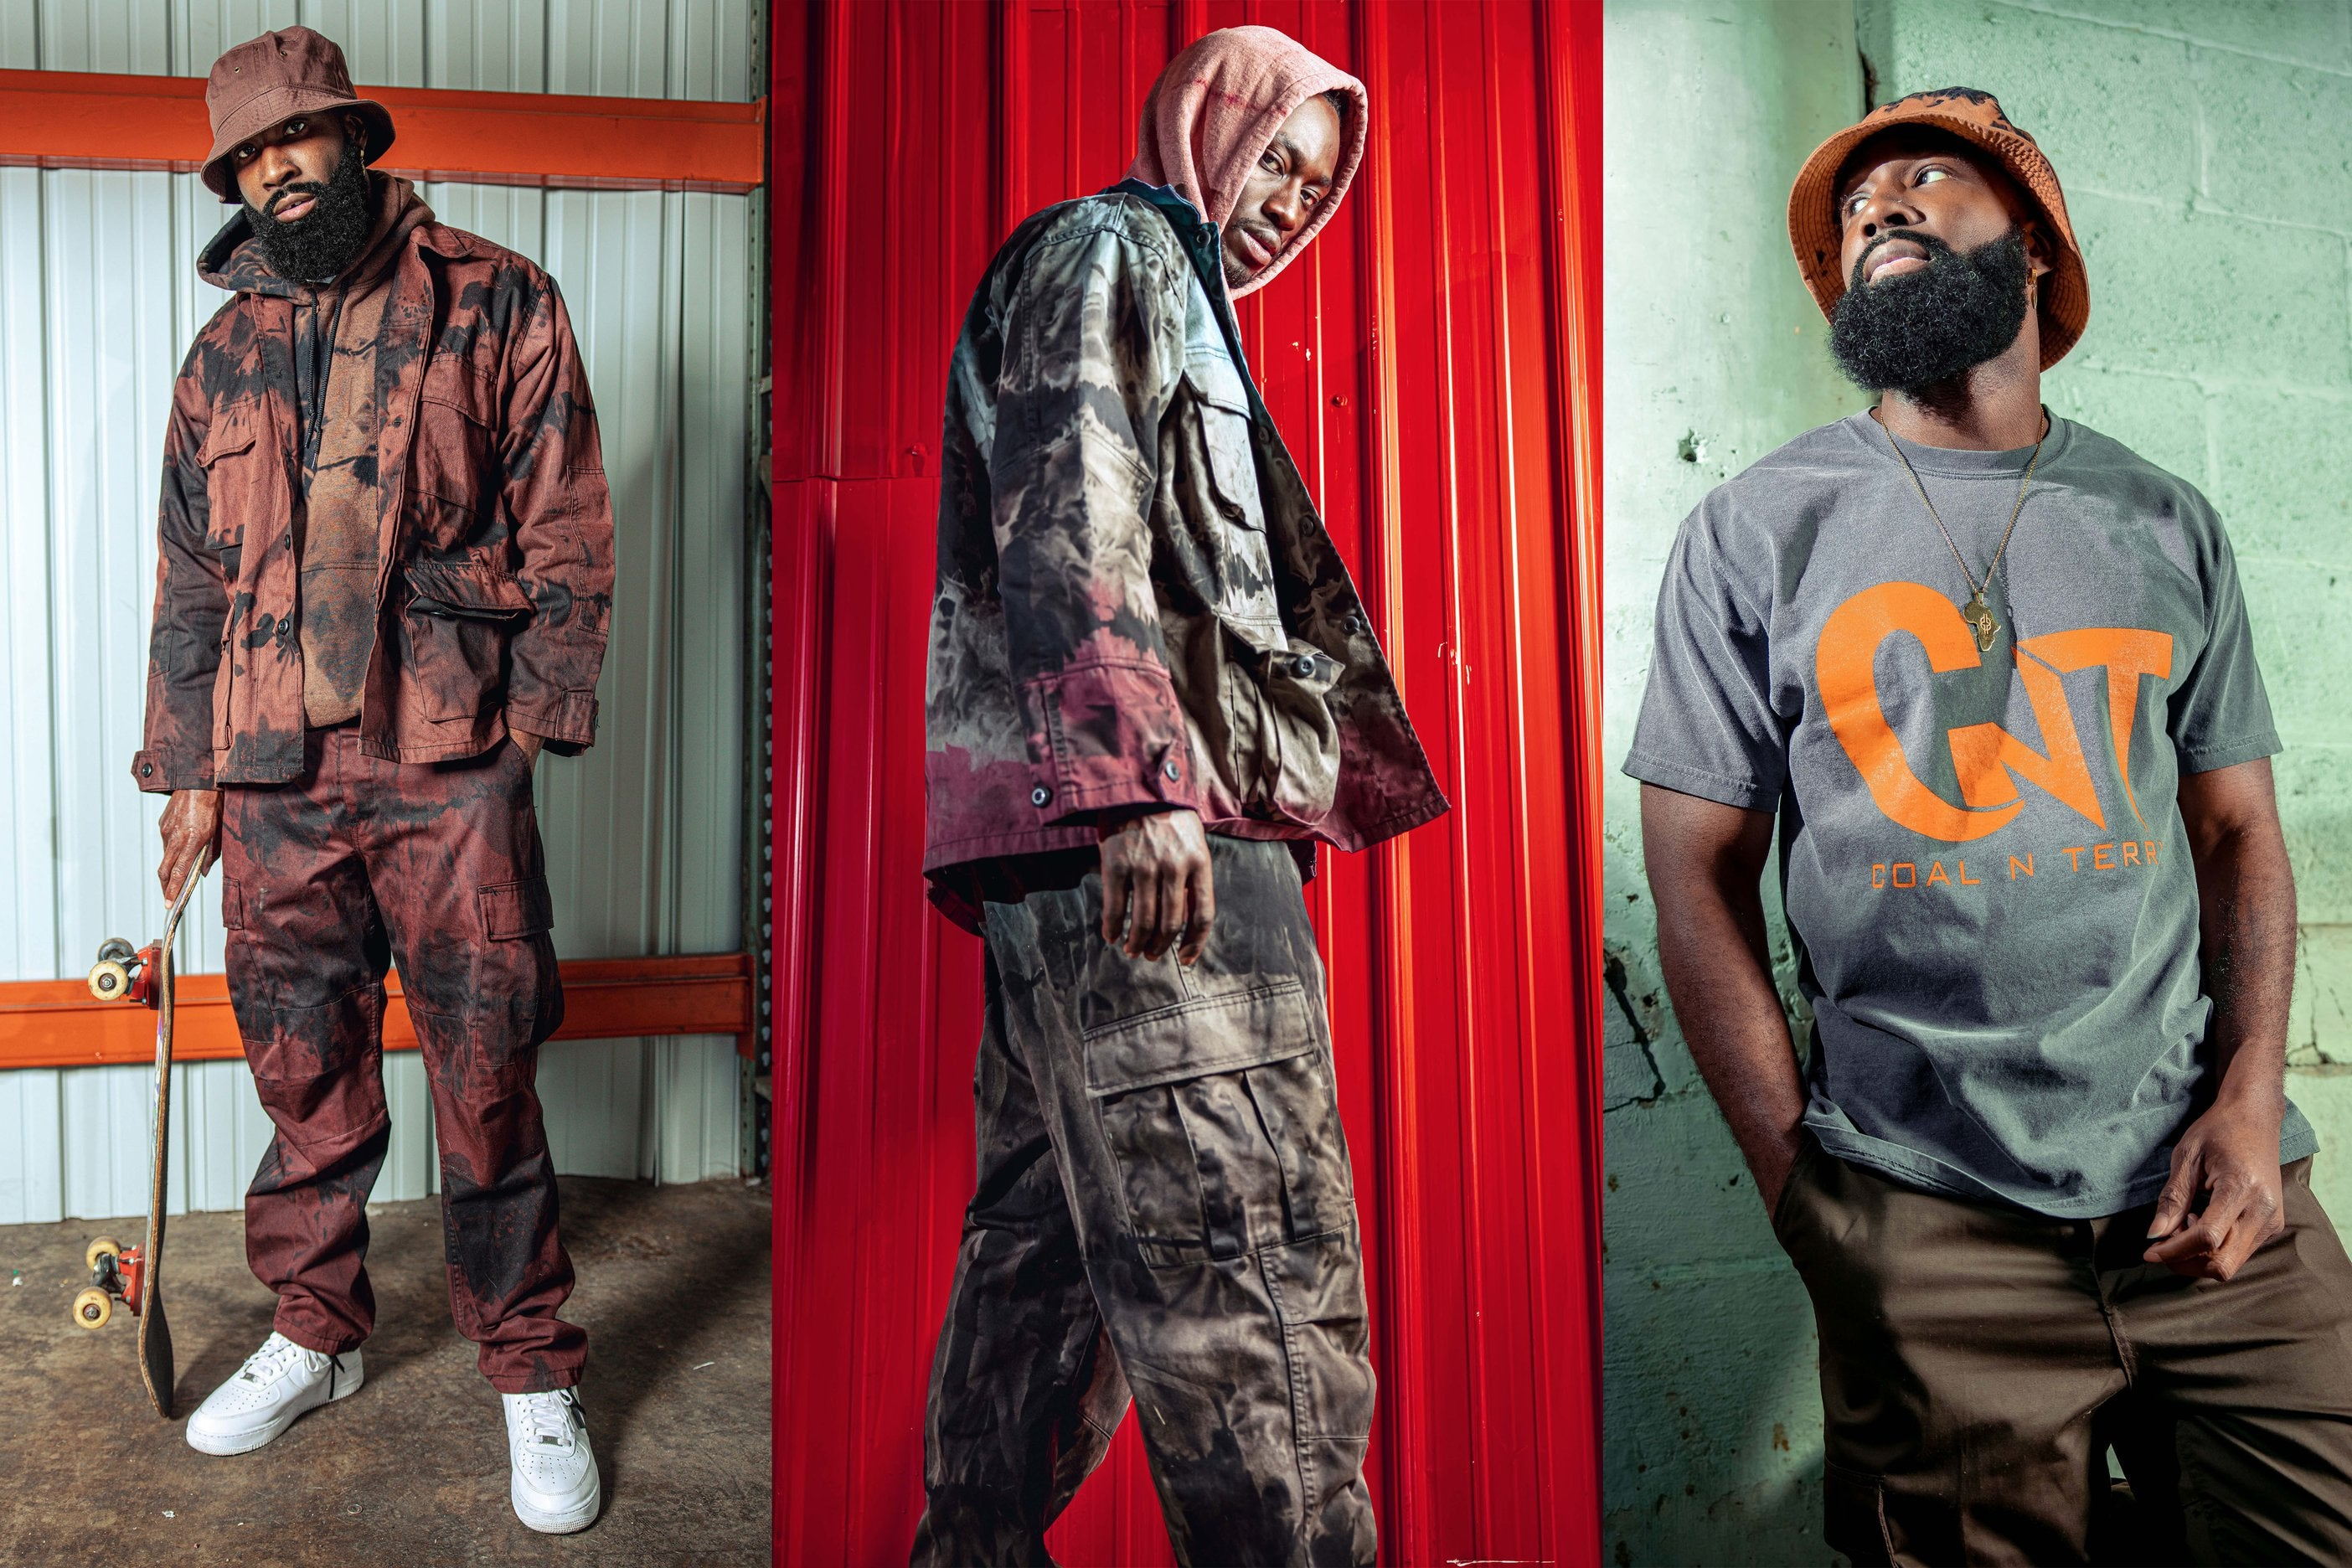 3-panel photo with models wearing tie-dyed hoodies and cargo pants